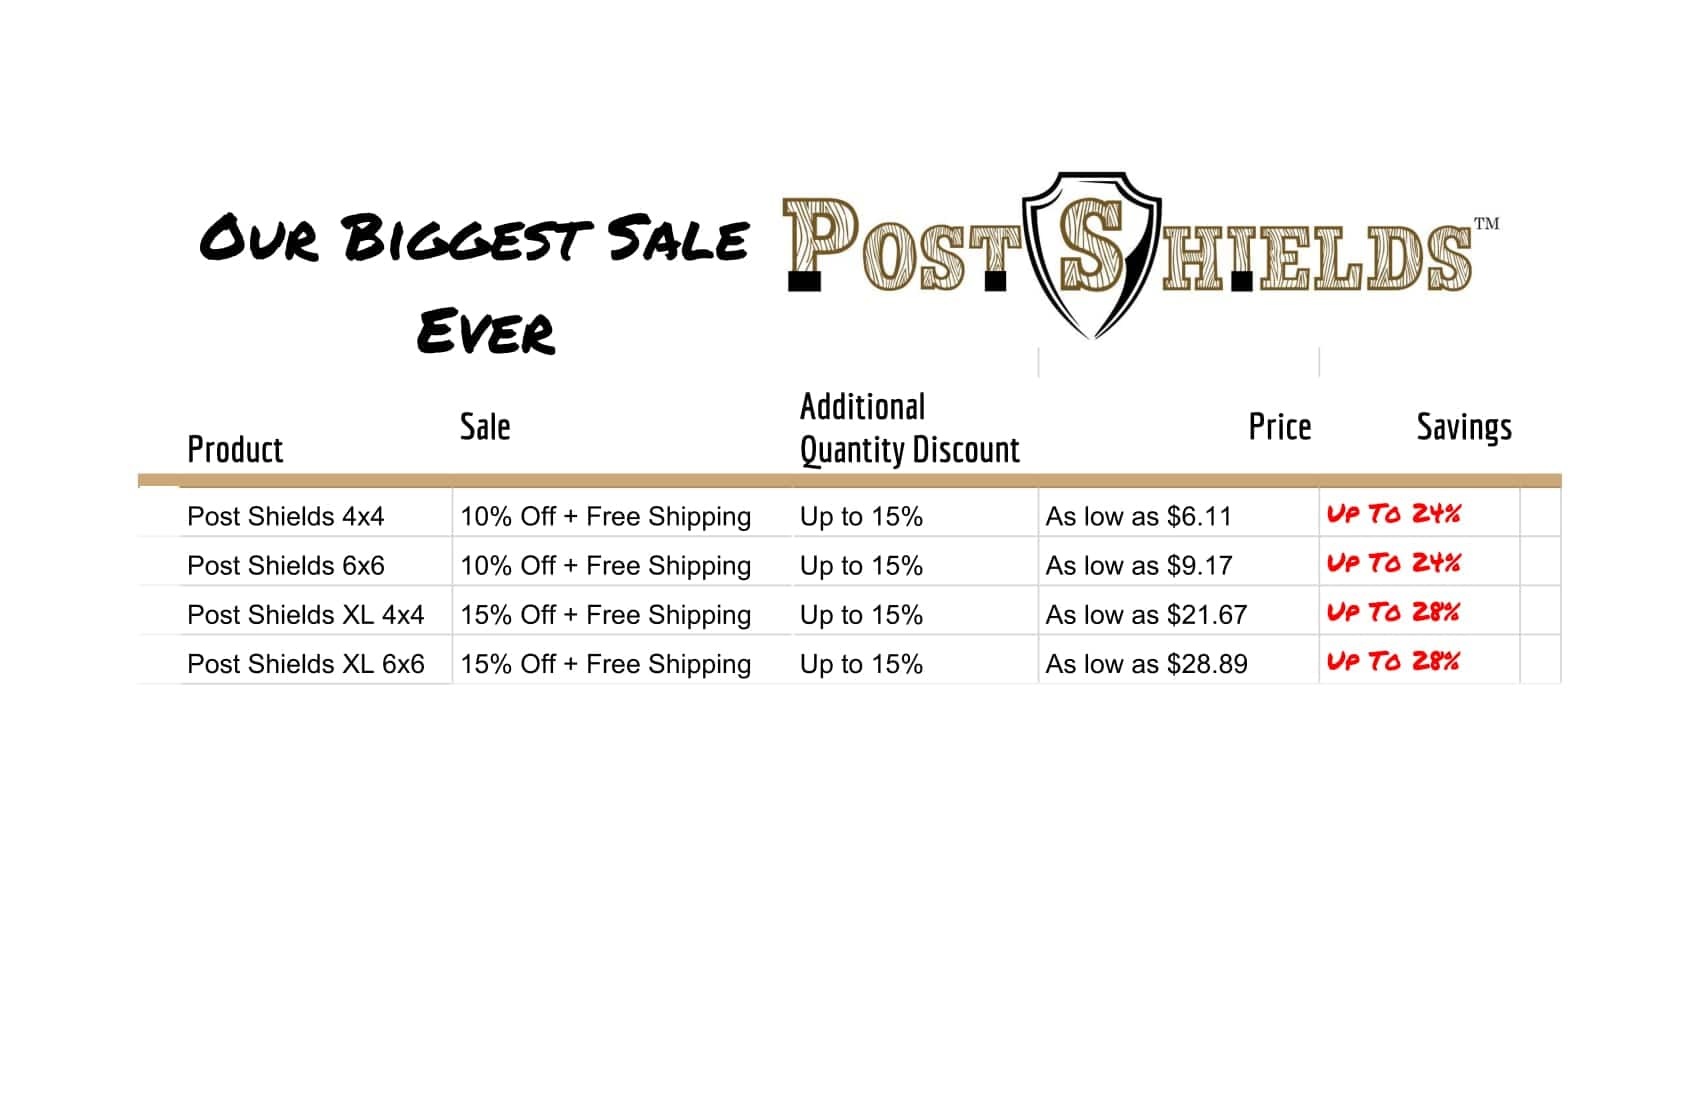 Nearly 30% off Post Shields, Easy, Instant, and Affordable Curb Appeal -until Cyber Monday $6.19